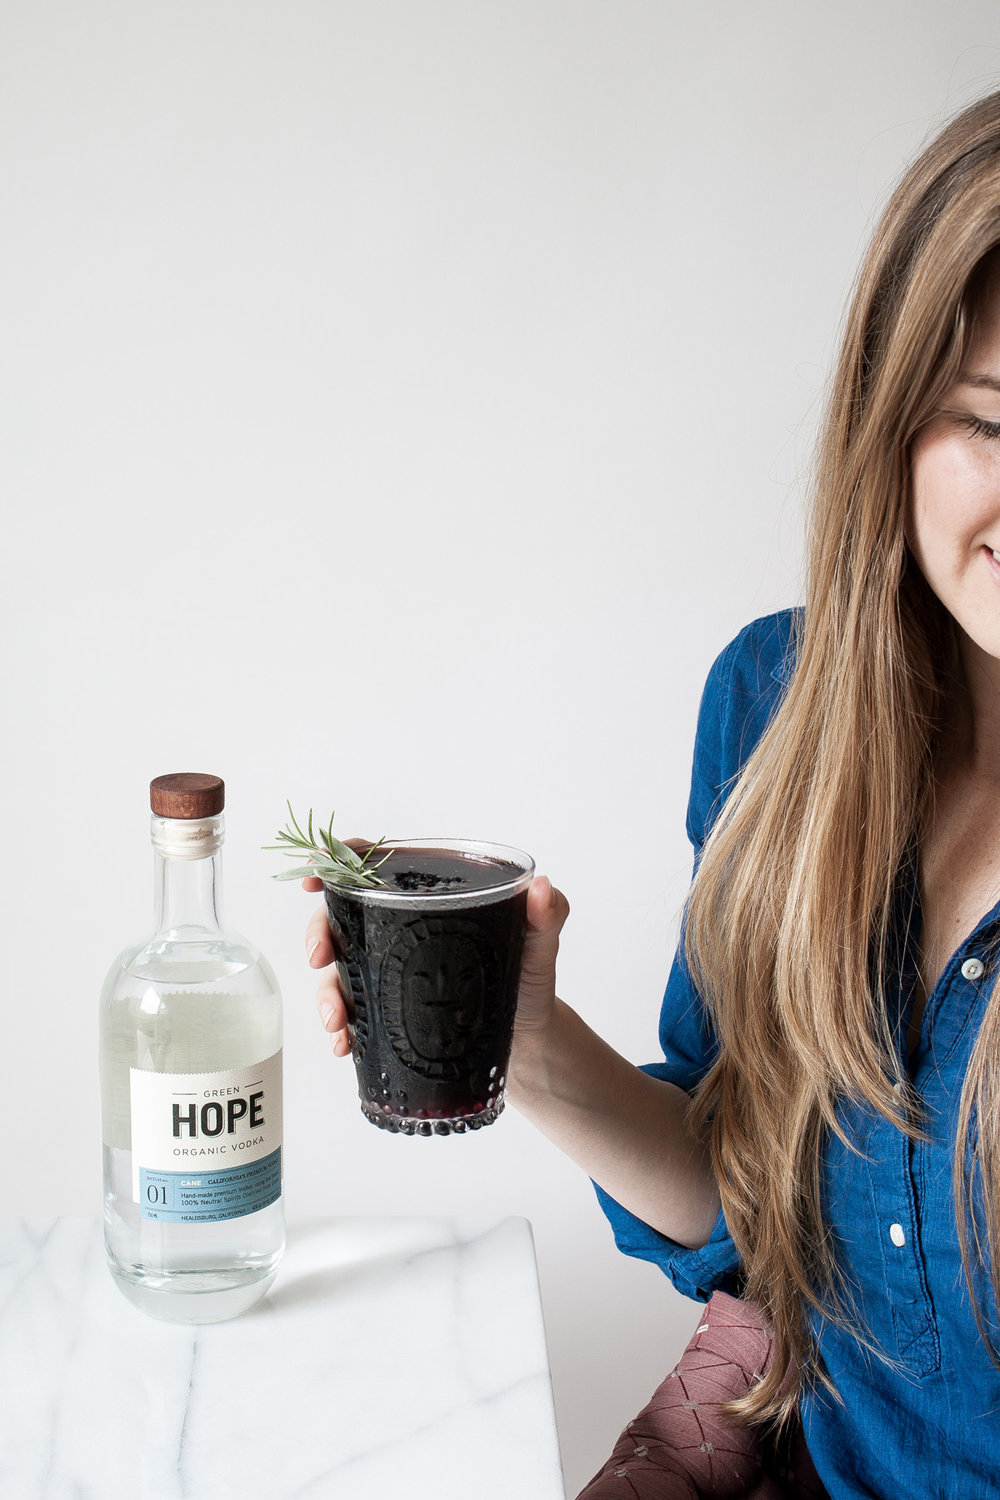 Green Hope Organic Cane Vodka is gluten-free non-GMO and perfect for a simple homemade cocktail with aloe vera and black elderberry syrup.